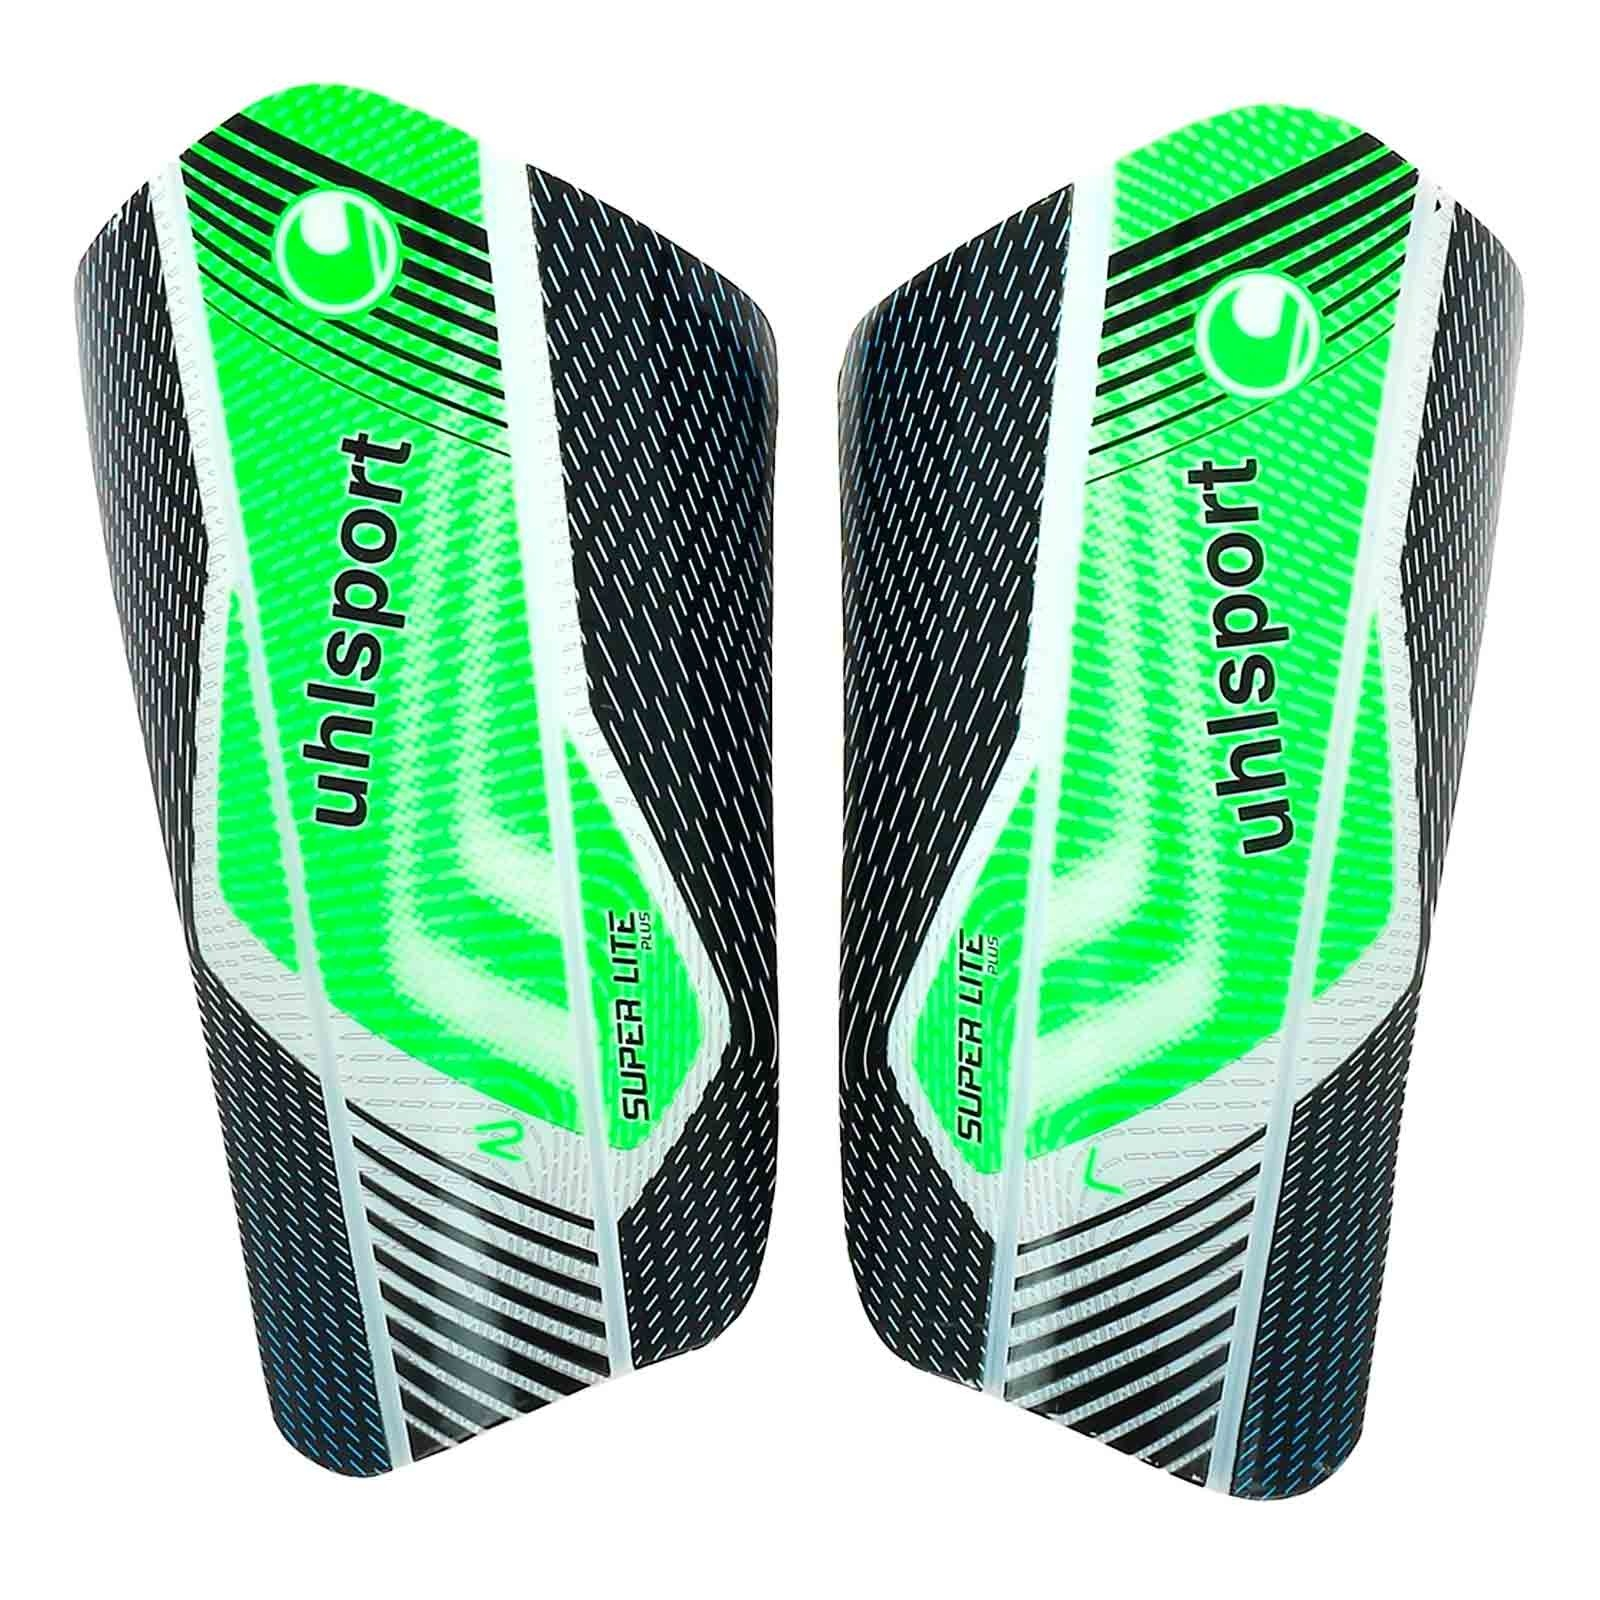 UHLSPORT SUPER LITE PLUS 100679001